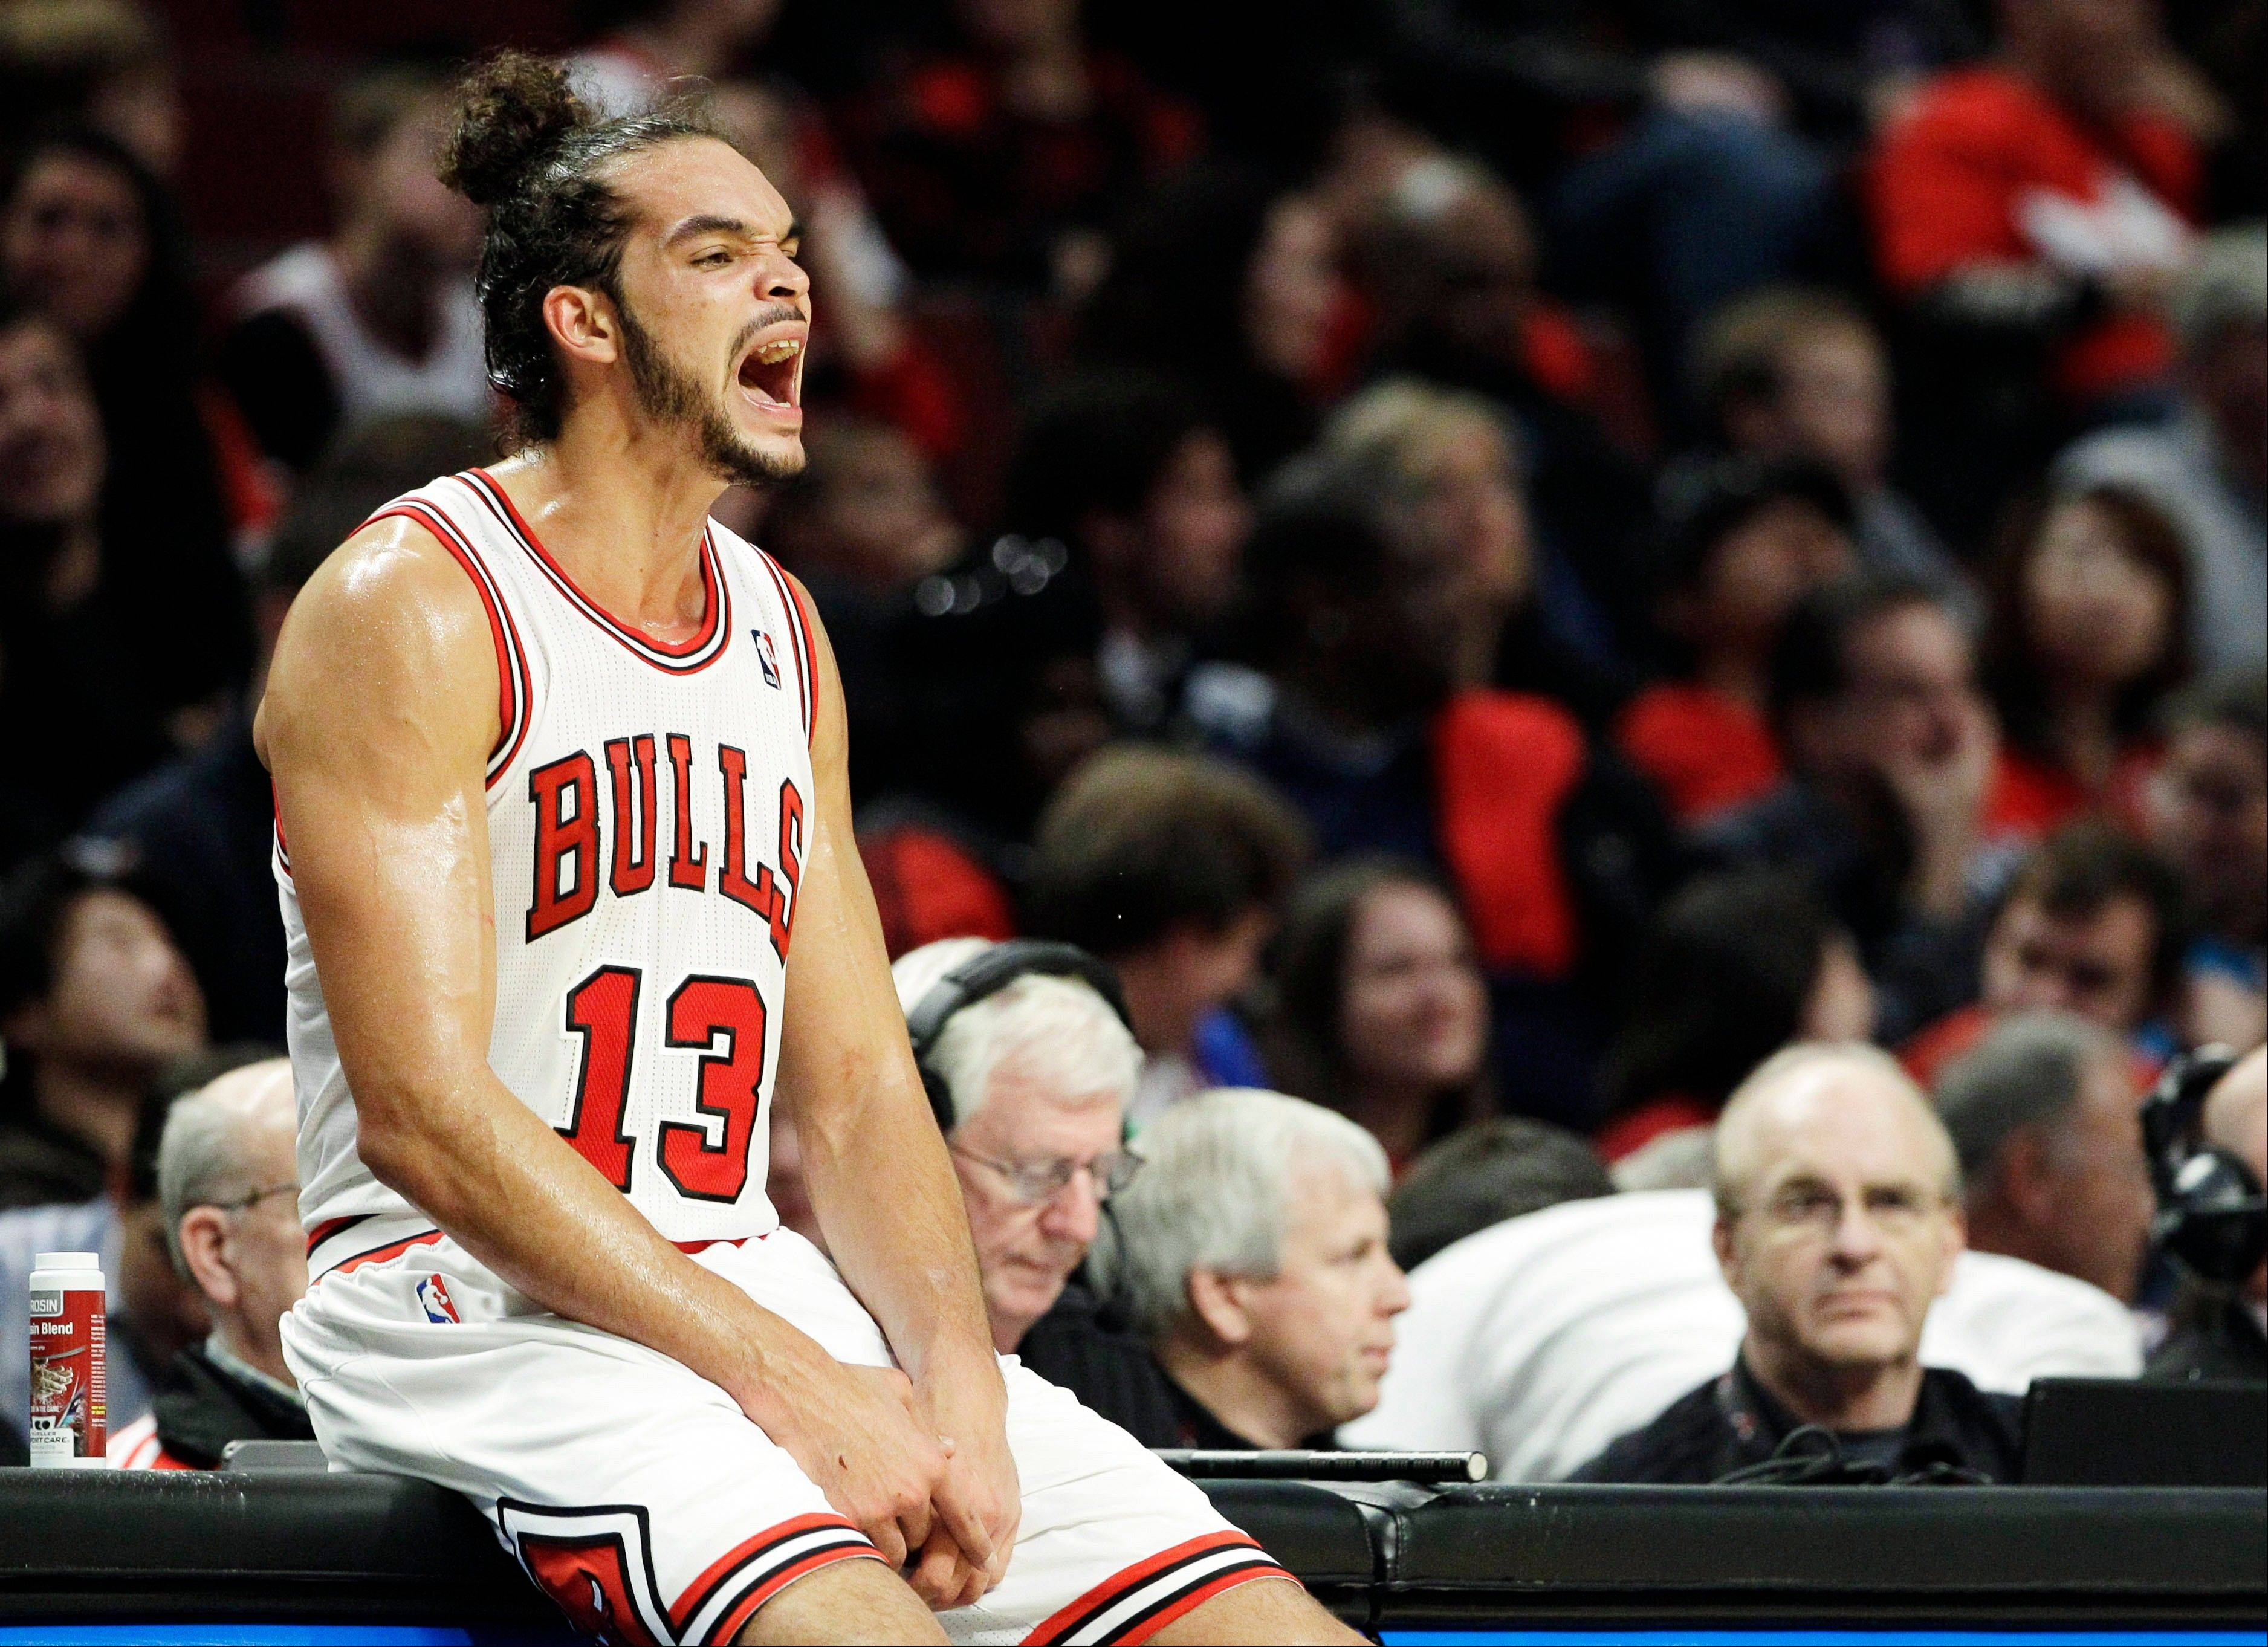 Bulls center Joakim Noah (13) yells to his team during the second half of an NBA basketball game against the New Orleans Hornets in Chicago, Saturday, Nov. 3, 2012. The Hornets won 89-82.